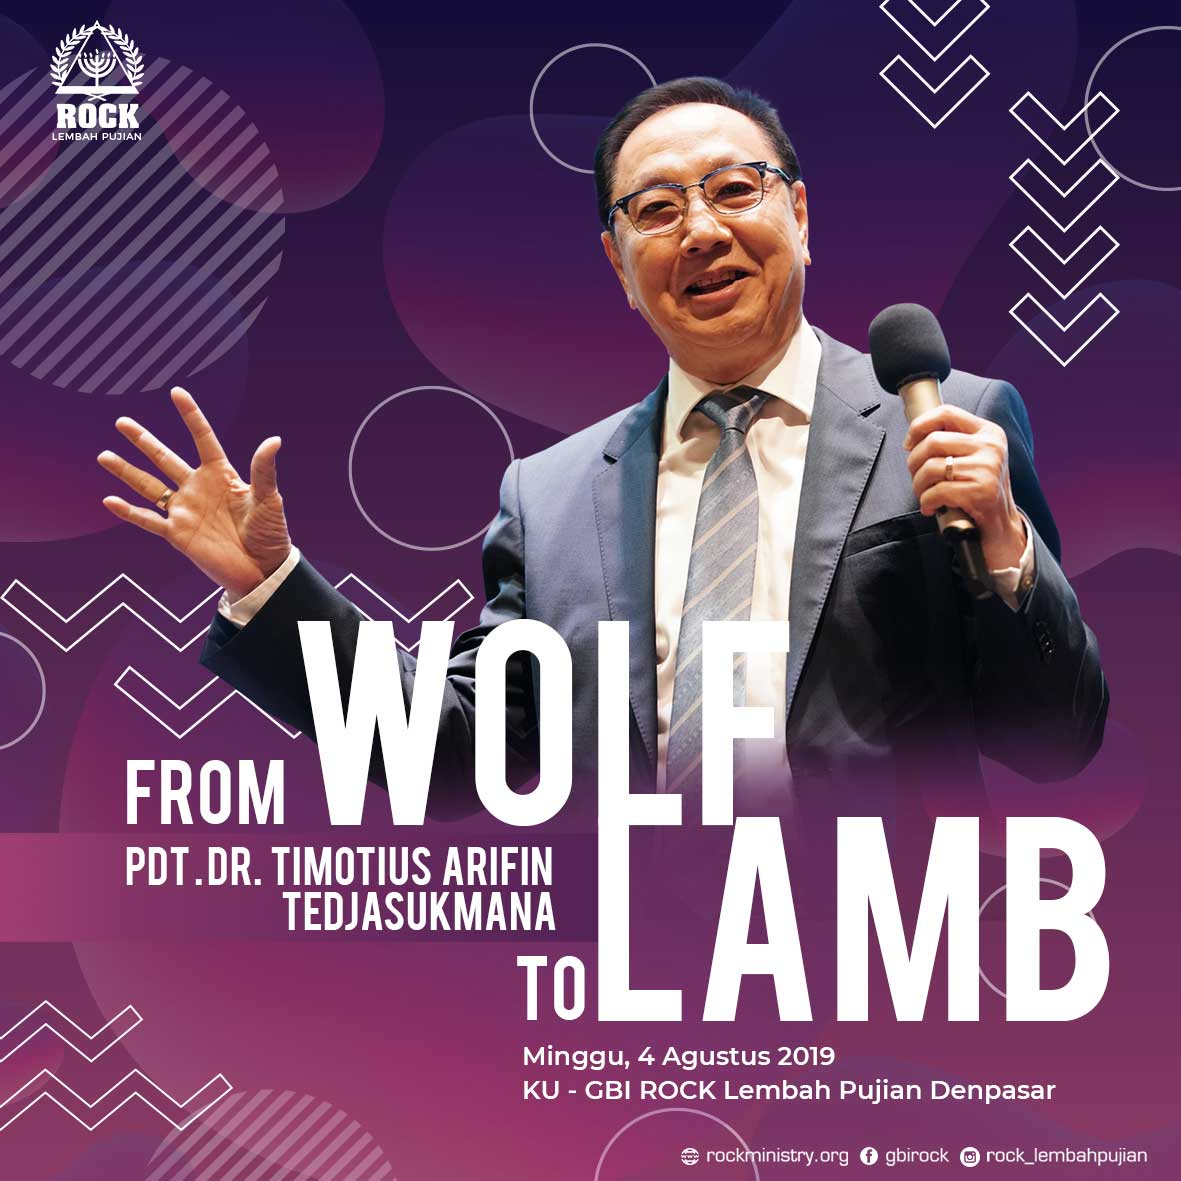 FROM WOLF TO LAMB | Pdt. Dr. Timotius Arifin Tedjasukmana